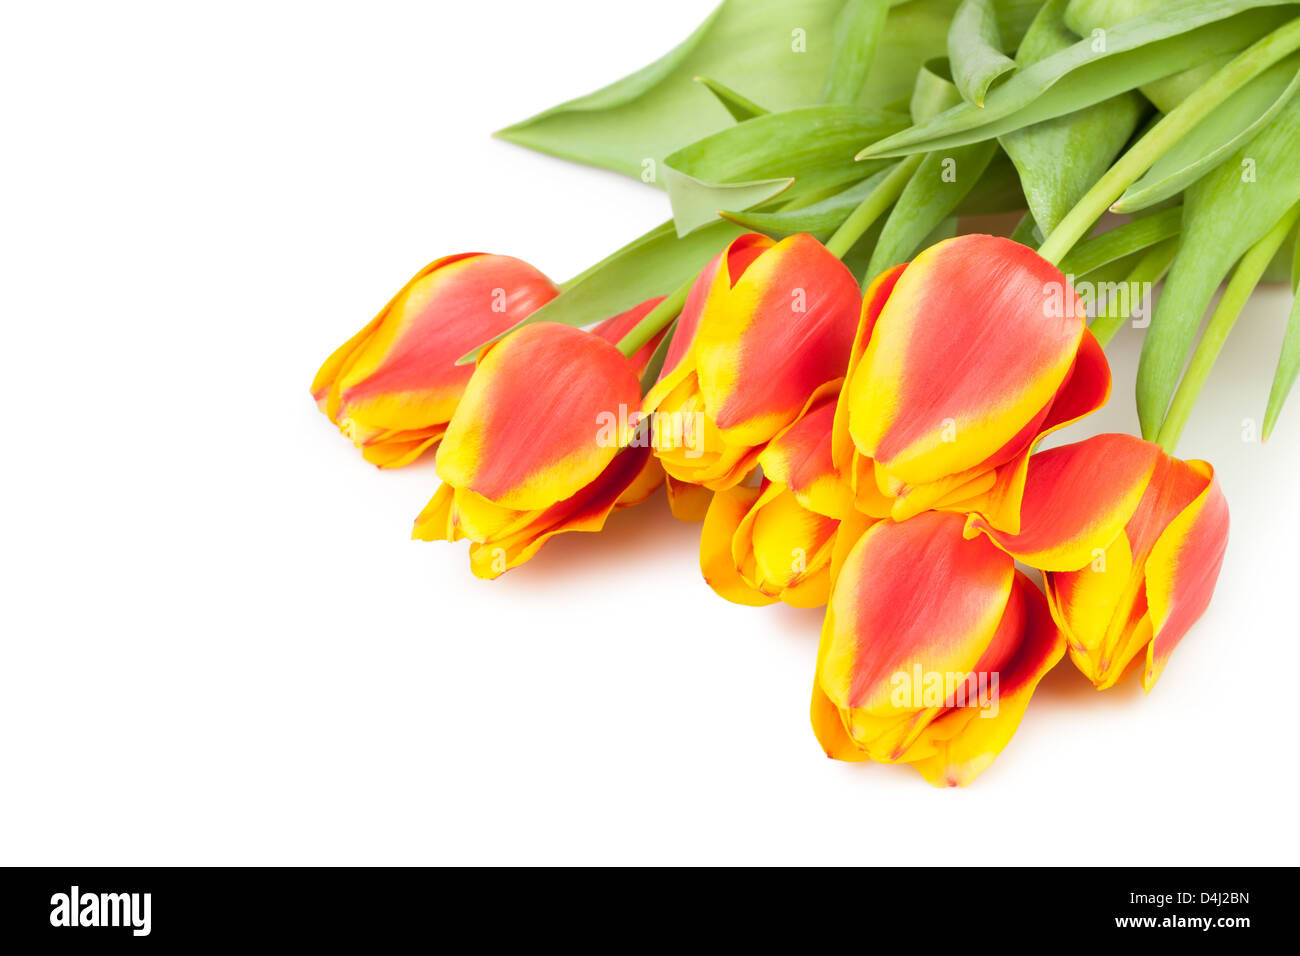 tulips bouquet lay on white background - Stock Image